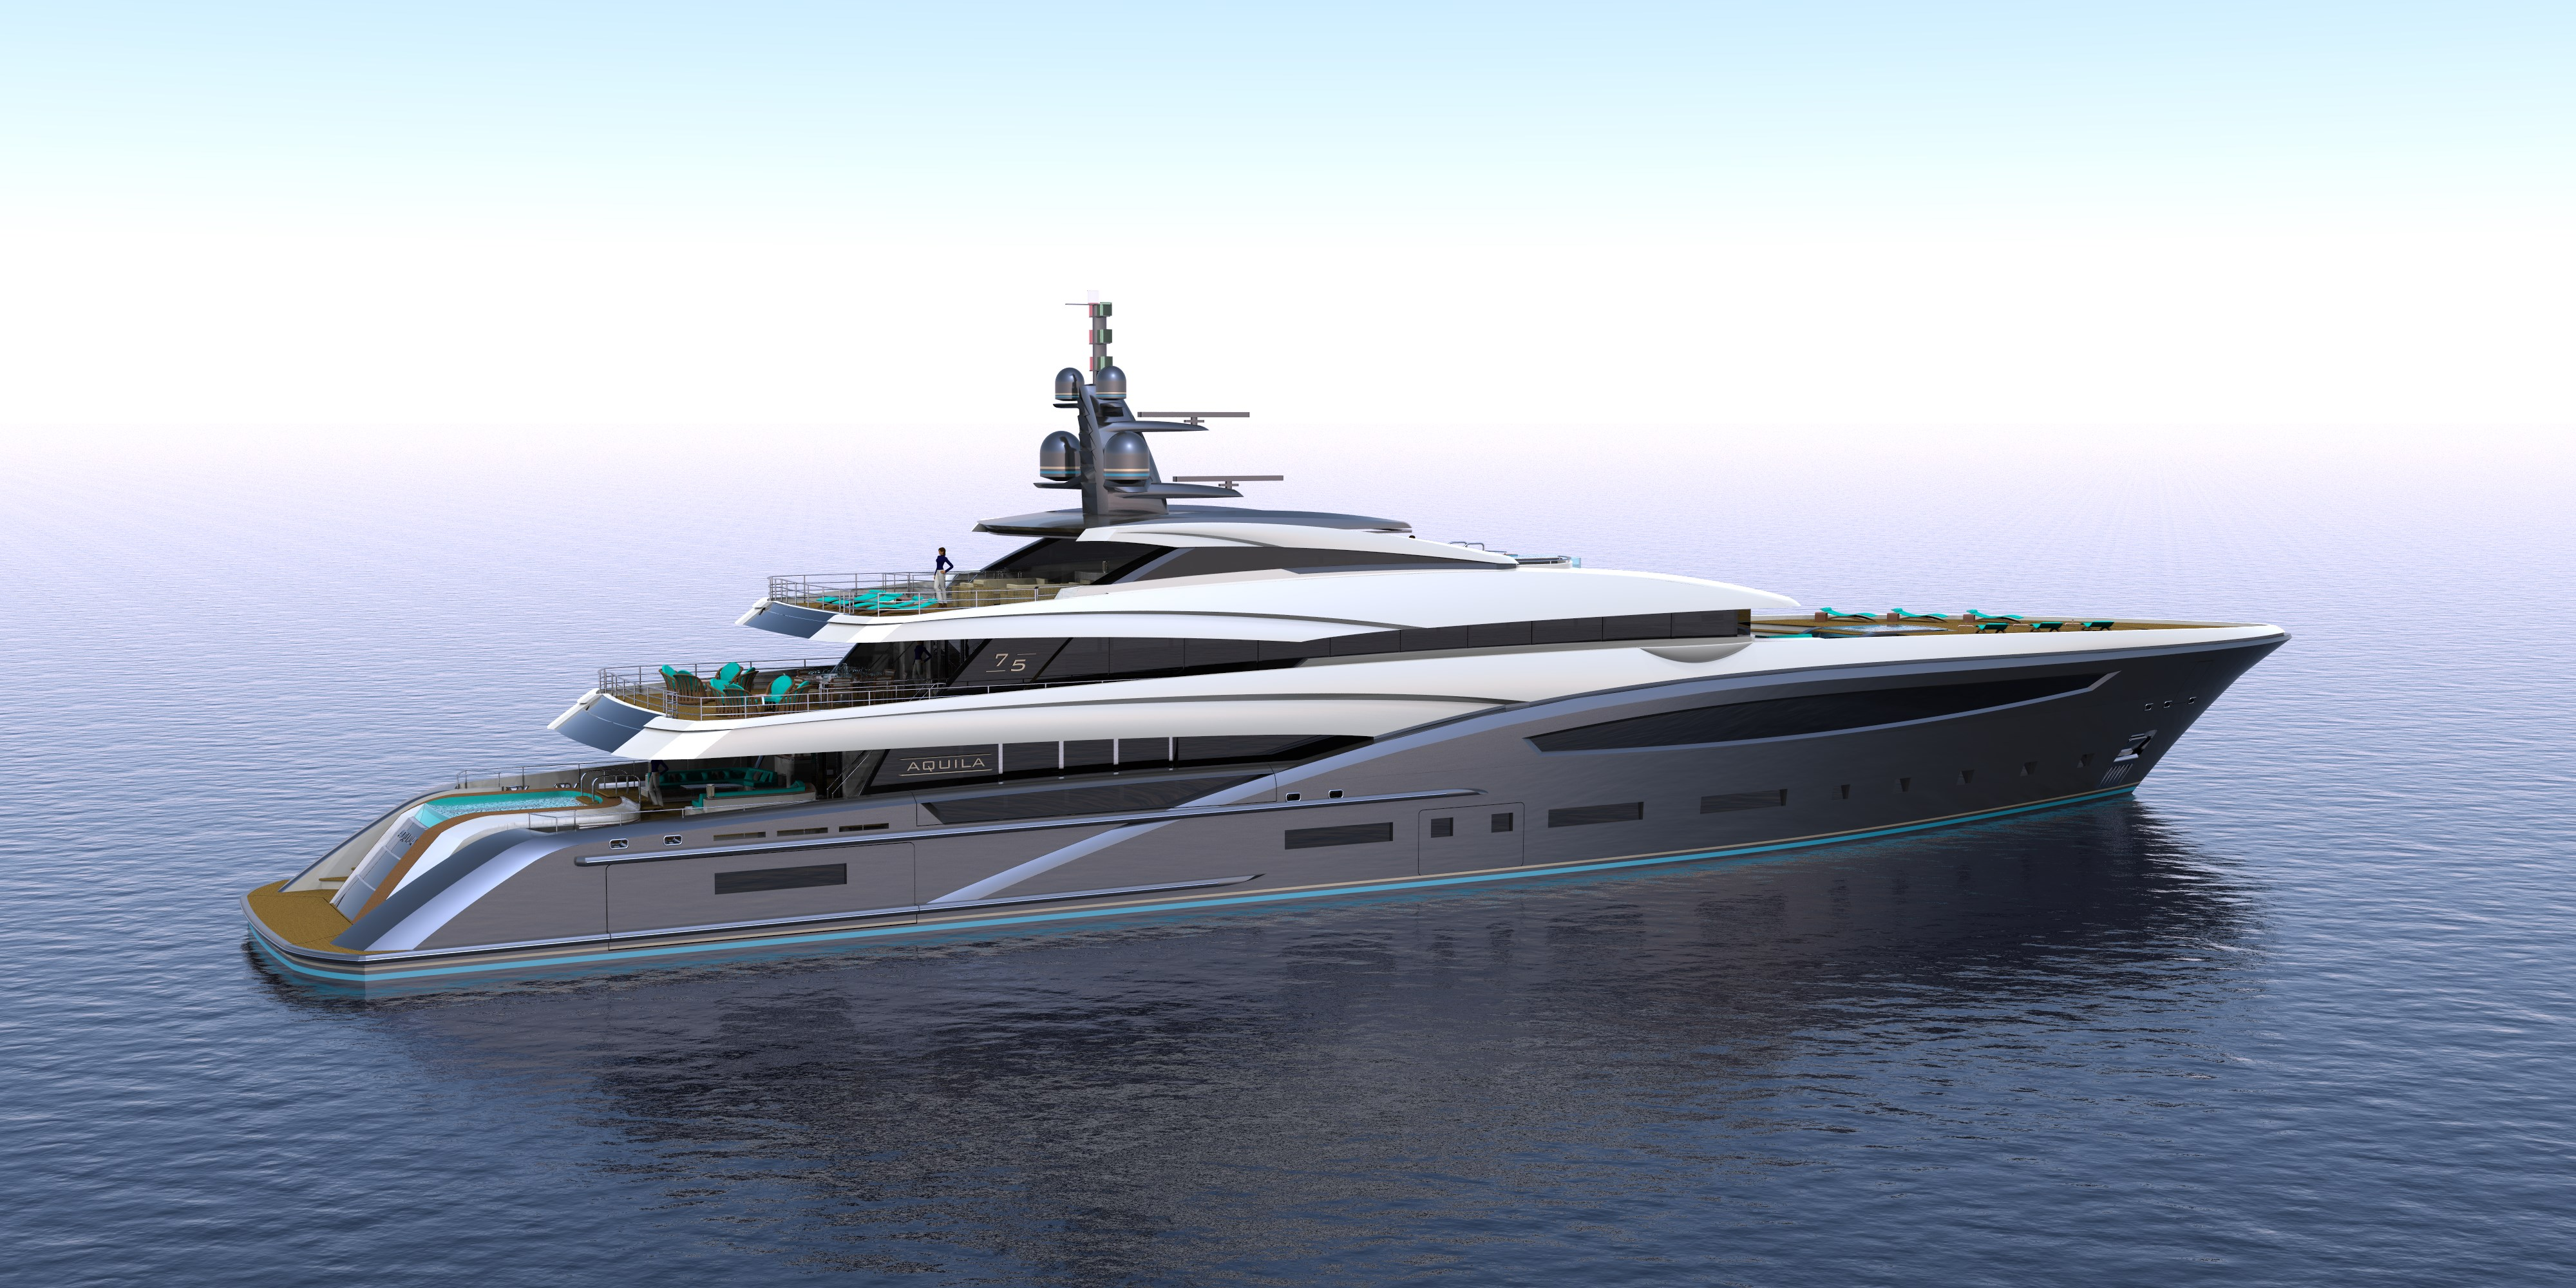 AQUILA 75M specs with detailed specification and builder summary